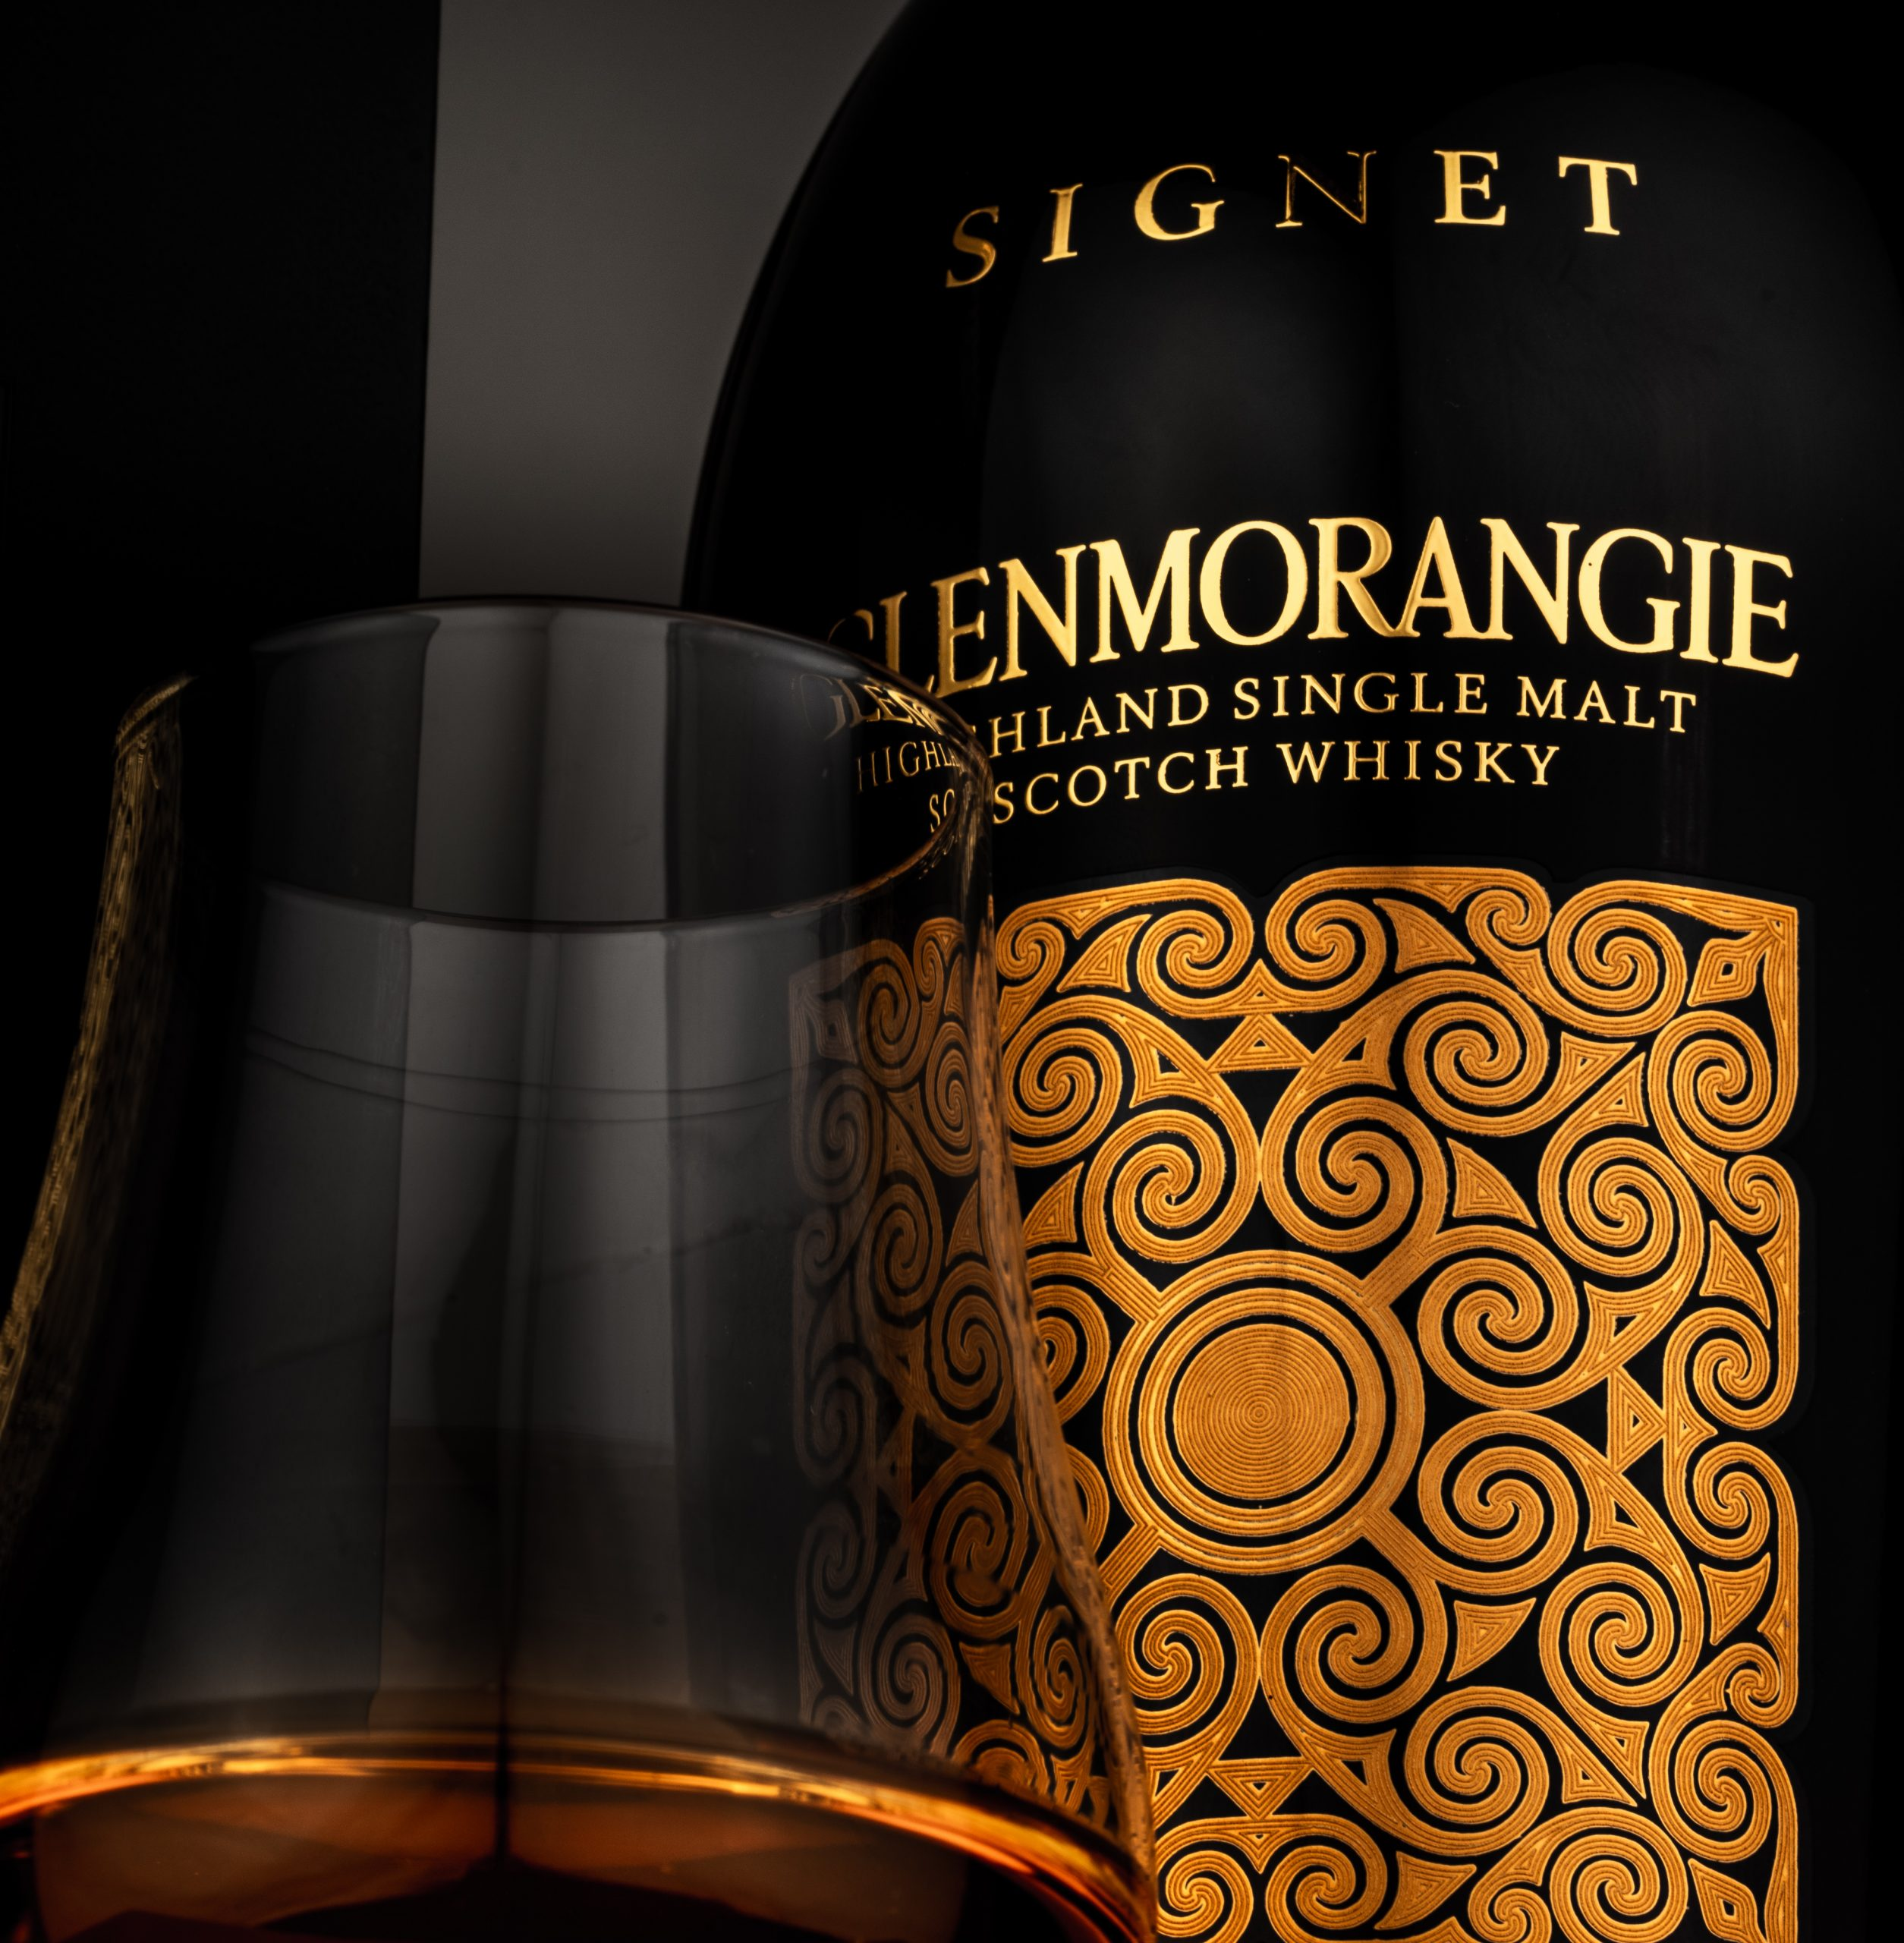 Productfotografie - Drambo Whisky - Done by Deon